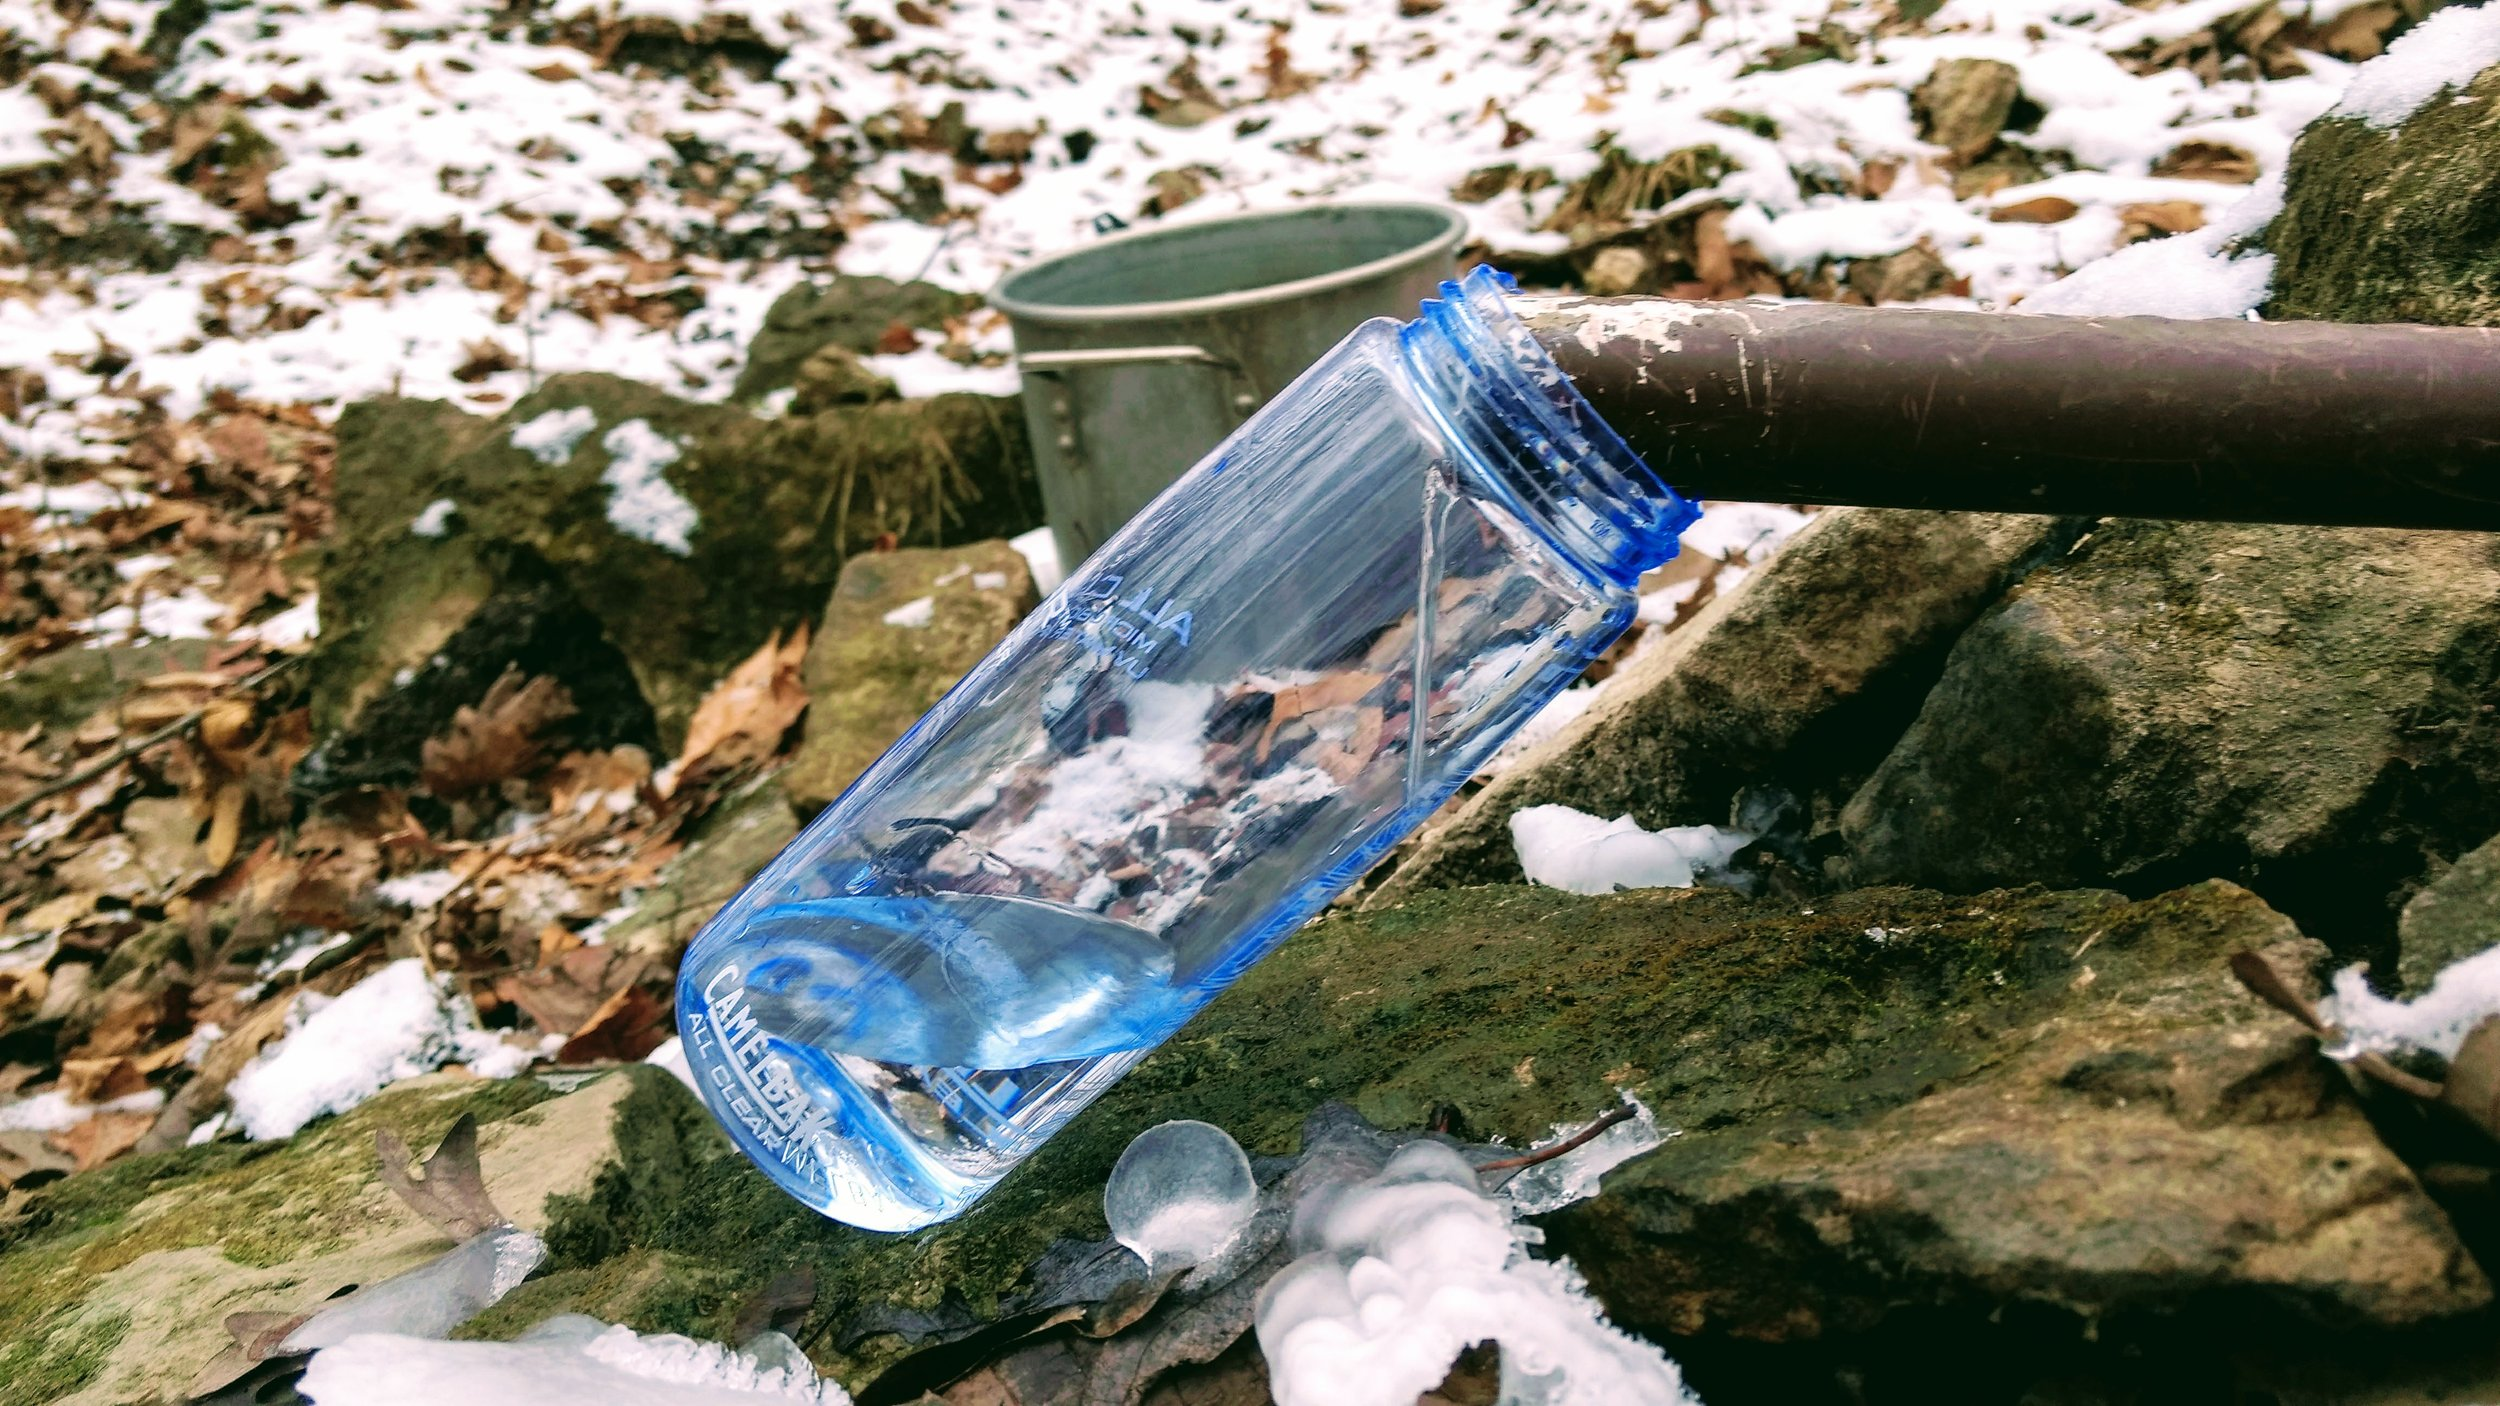 Collecting spring water to make mead